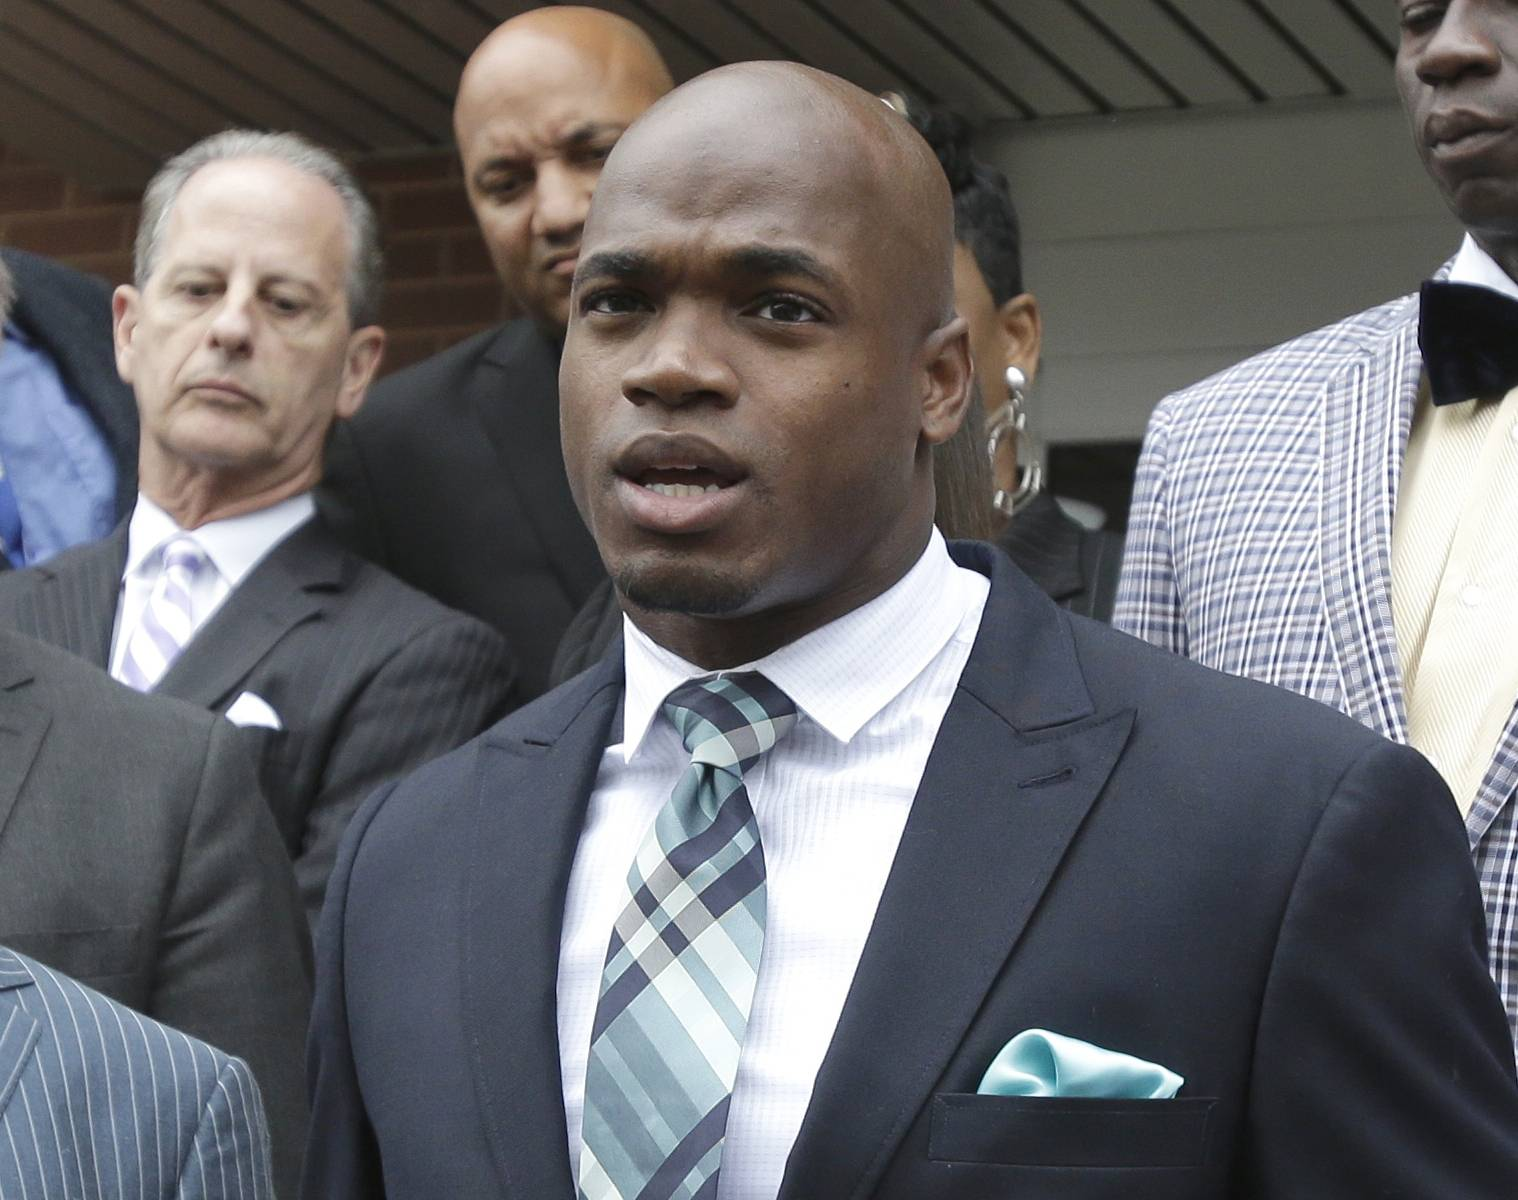 The NFL suspended Adrian Peterson without pay for at least the remainder of the season. The league said Tuesday, Nov. 18, 2014, it informed the Minnesota Vikings running back he will not be considered for reinstatement before April 15 for violating the NFL personal conduct policy.